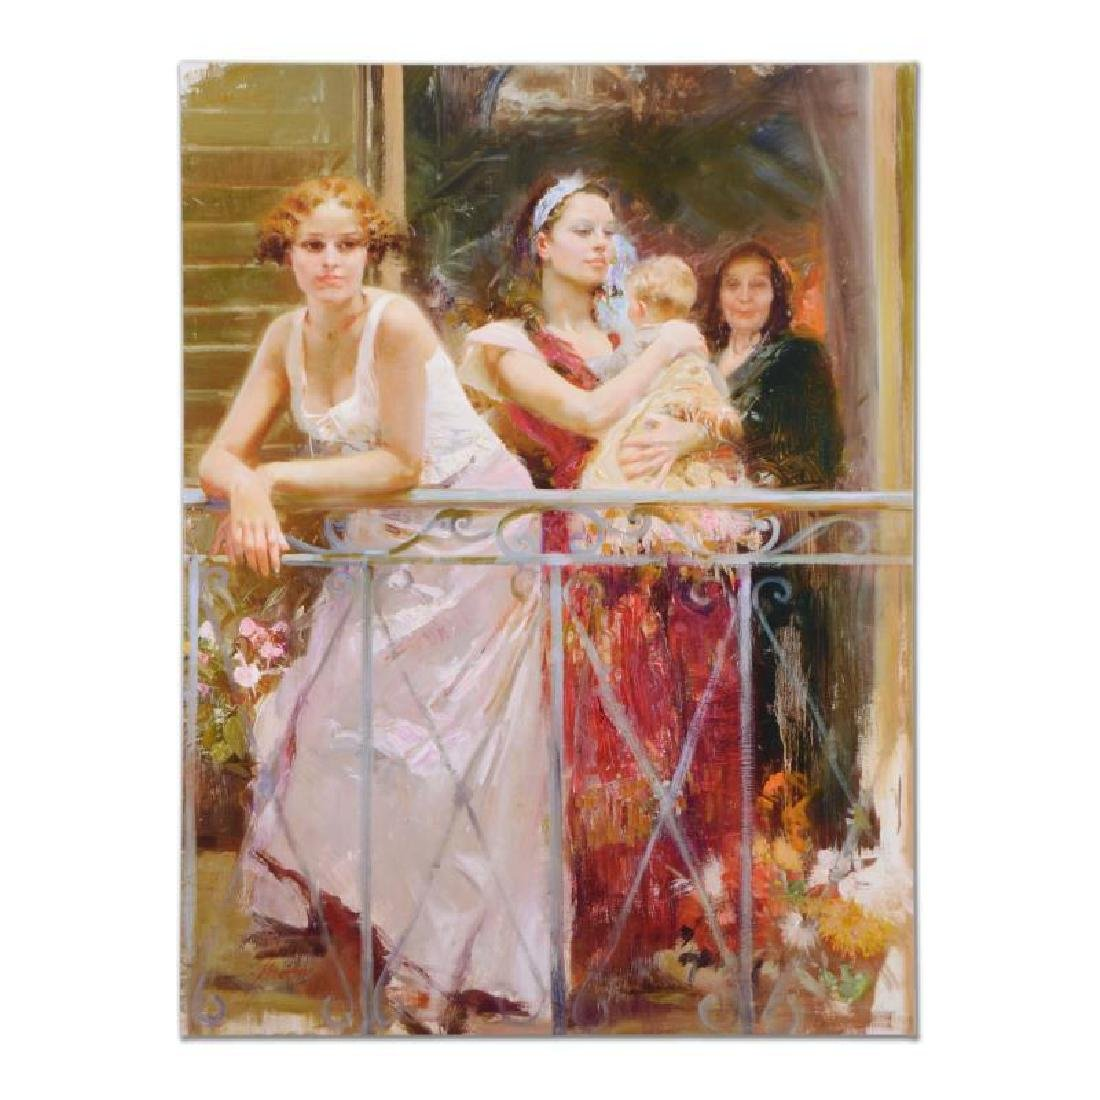 Waiting on the Balcony by Pino (1939-2010)